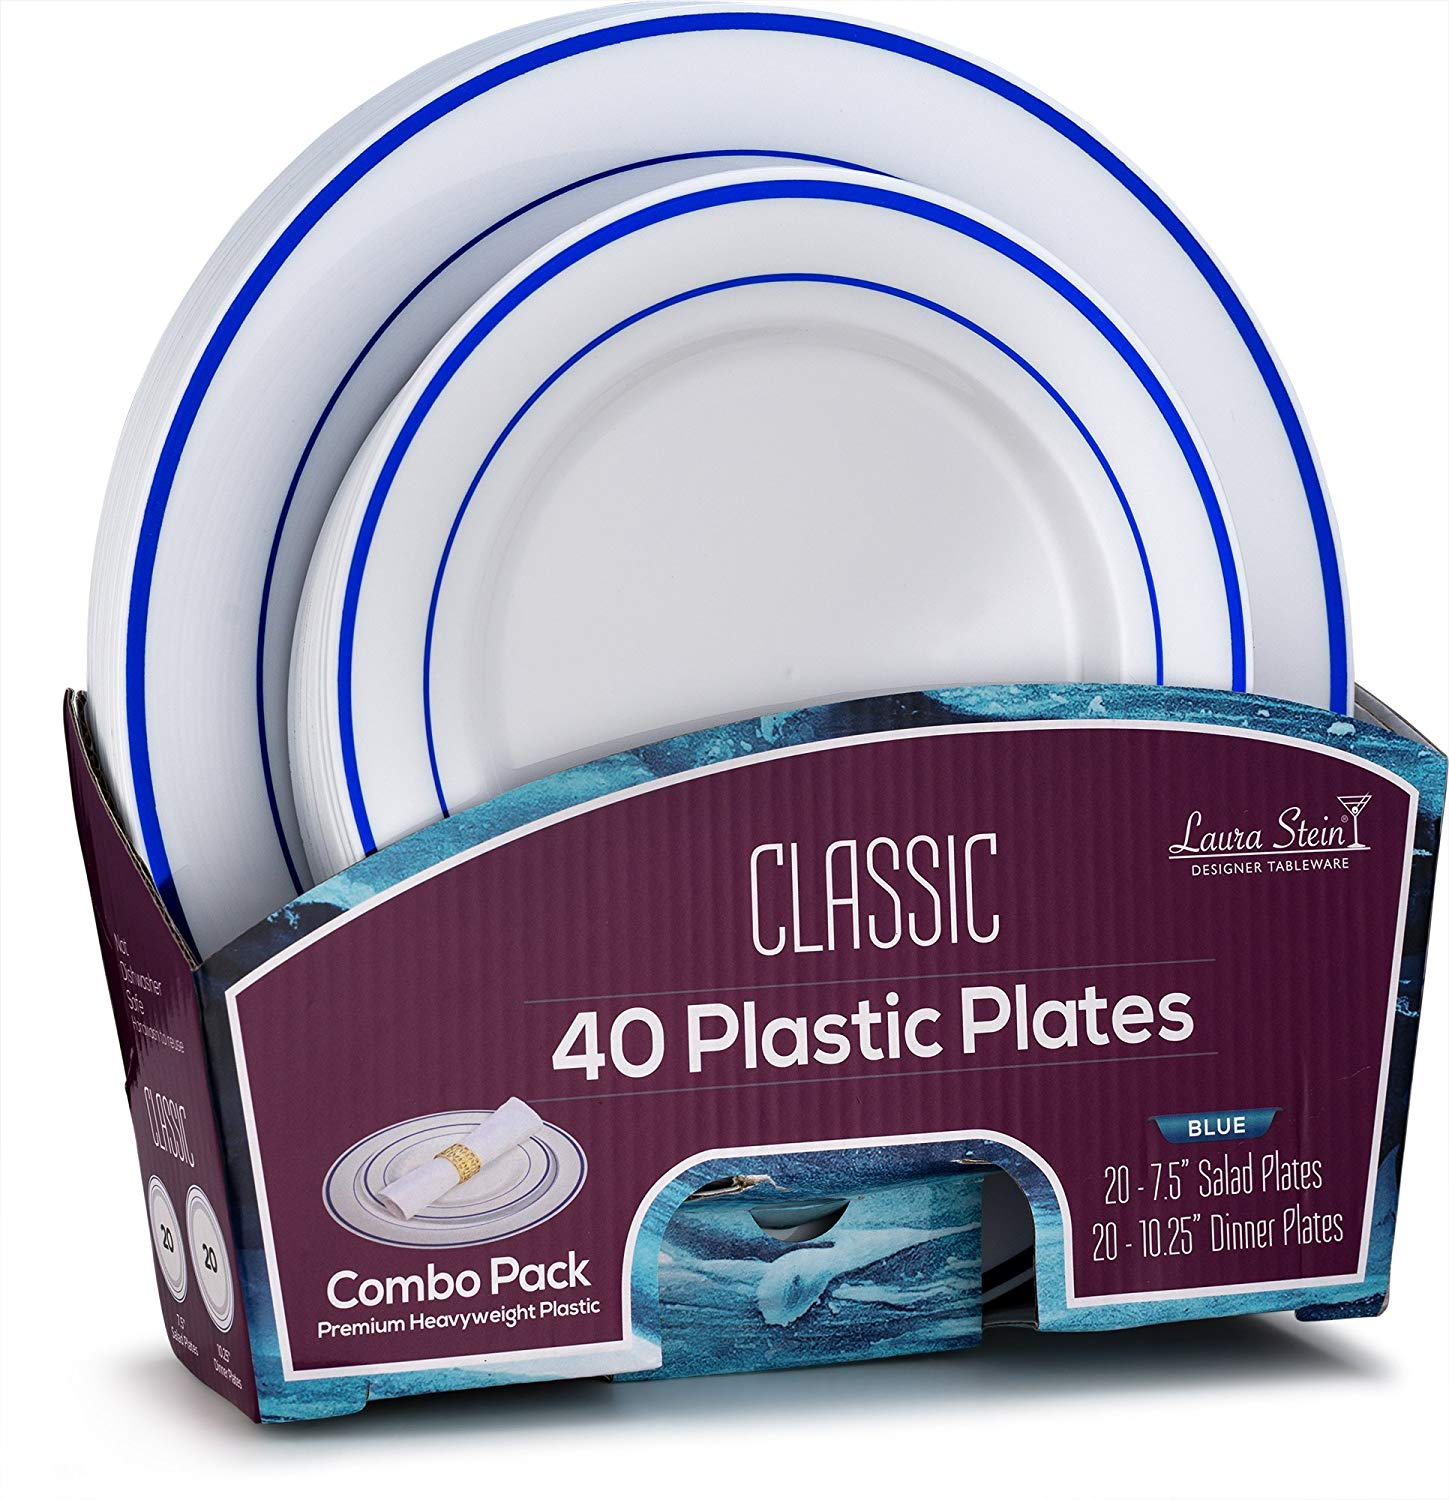 Laura Stein Designer Tableware Classic Series Hot Stamp Combo Plastic Disposable Wedding Plates & Party Plates Sets (40 Piece Set (20 Sets), White & Blue)